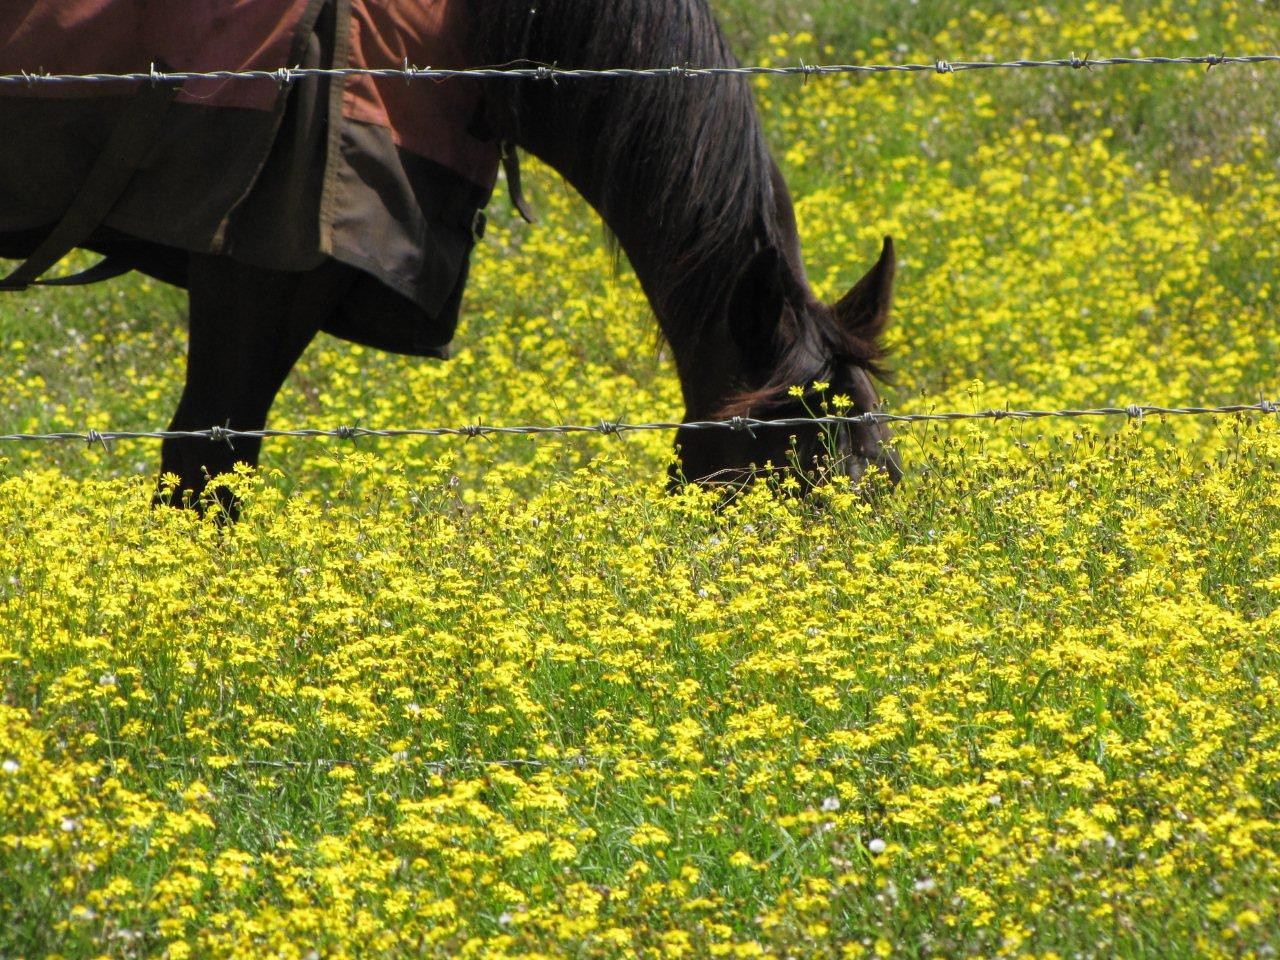 Horse in fireweed (Senecio madagascarienis) - Haiku (Maui, Hawaii)PhotoID=starr-100330-4011.jpgPhoto by Forest and Kim Starr.  If you'd like to use this image, please see their image use policy.More images of this species by these photographers can be found here: search for more Starr images of this species on HEAR.org